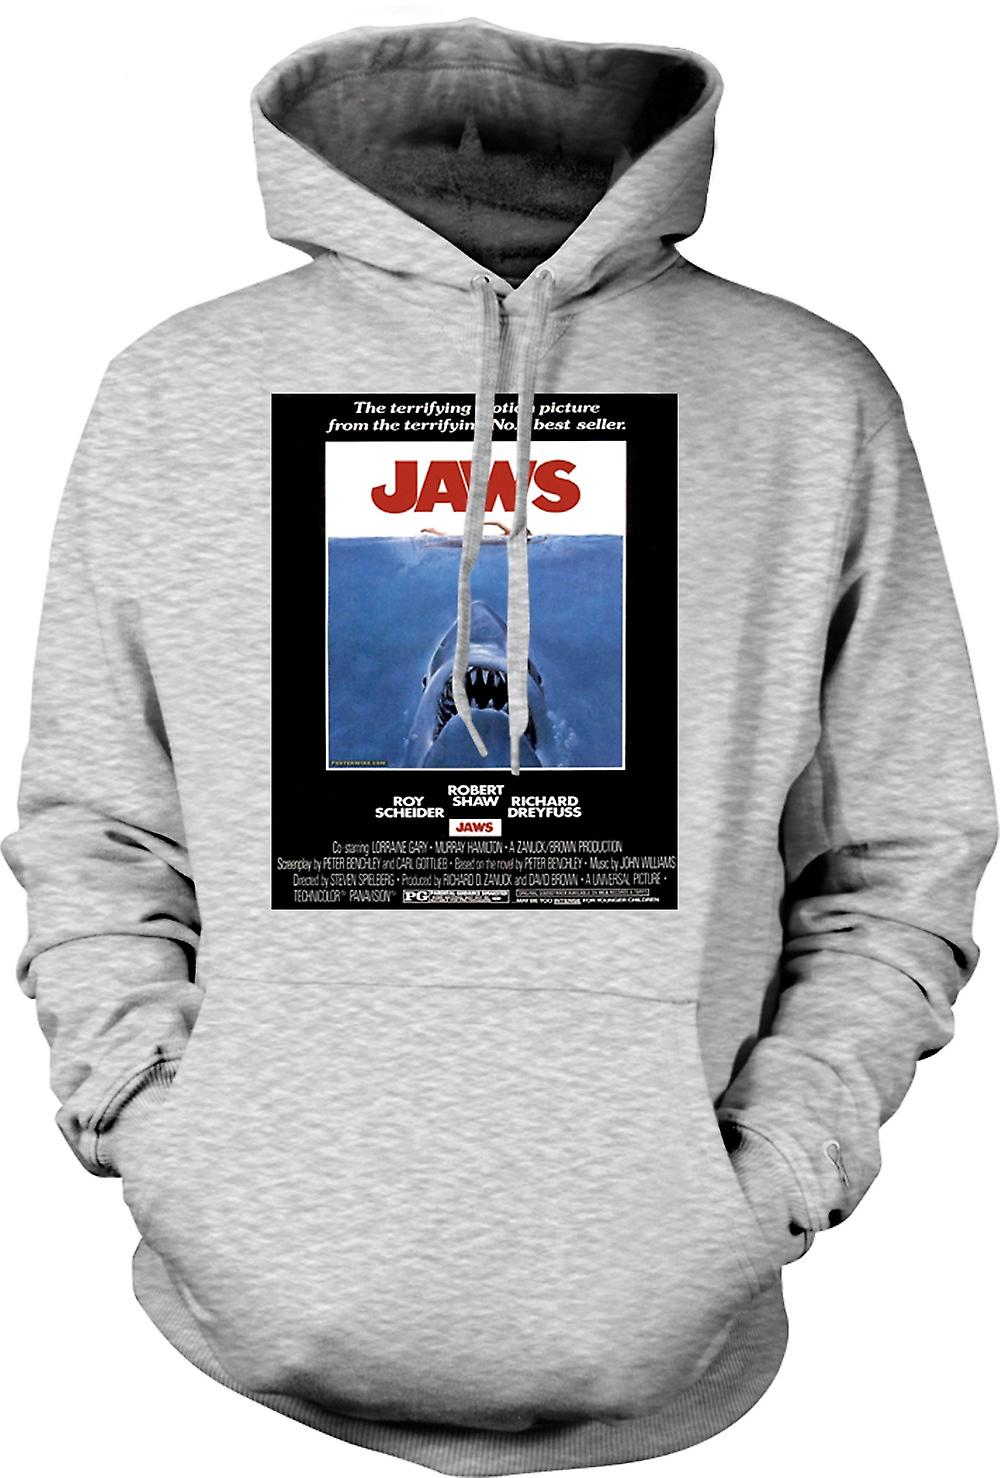 Mens Hoodie - Jaws - Horror - Shark - B Movie - Poster